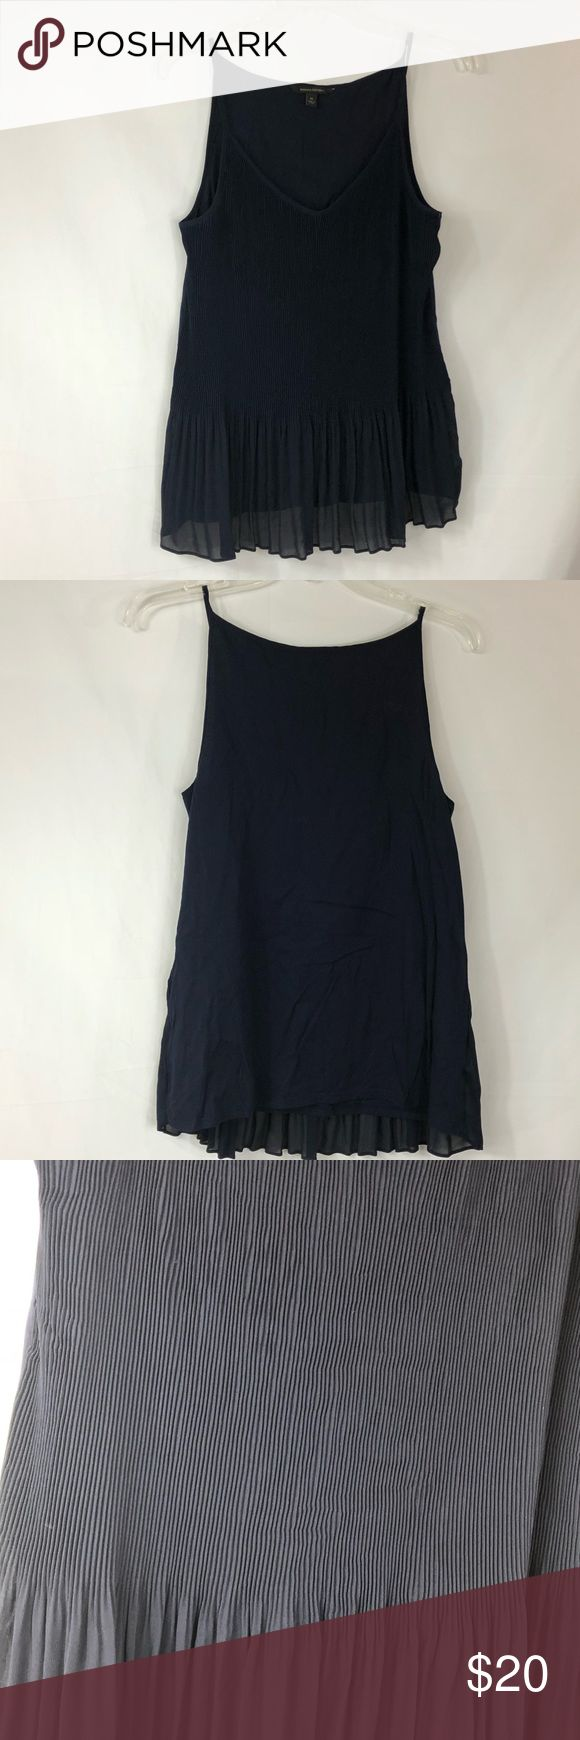 Banana Republic Navy Pleated Tank Size M Super fine pleating Spagetti straps Sheer front that is lined Cotton back Please see pictures for materials, care and measurements. 6024  Banana Republic Tank perfect with a cardigan for office or evening wear. Banana Republic Tops Camisoles